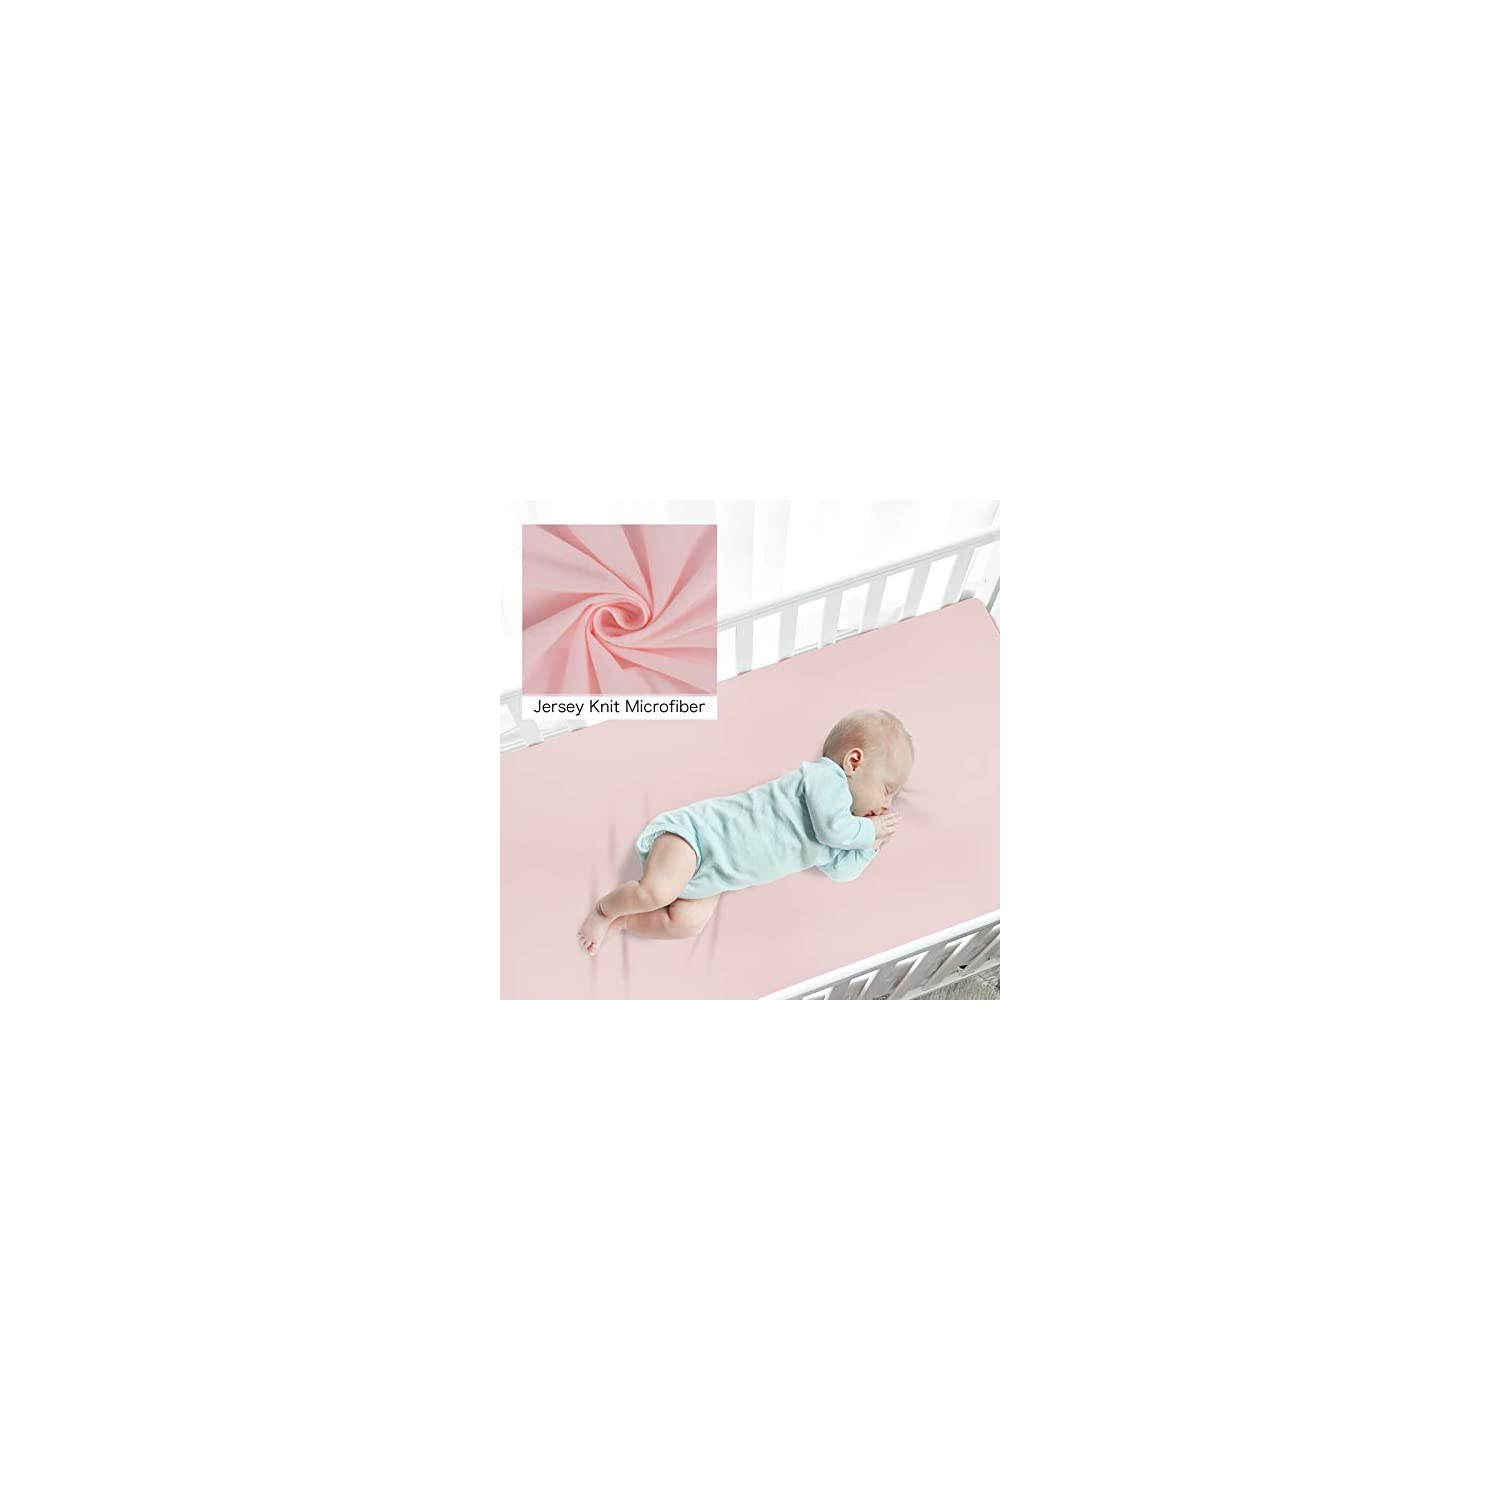 TILLYOU Jersey Knit Pack N Play Sheets Fitted, Mini Portable Crib Sheets Set for Girls Boys, Ultra-Soft Breathable Hypoallergenic Playard Playpen Sheets, 2 Pack Peachy Pink & Lt Gray